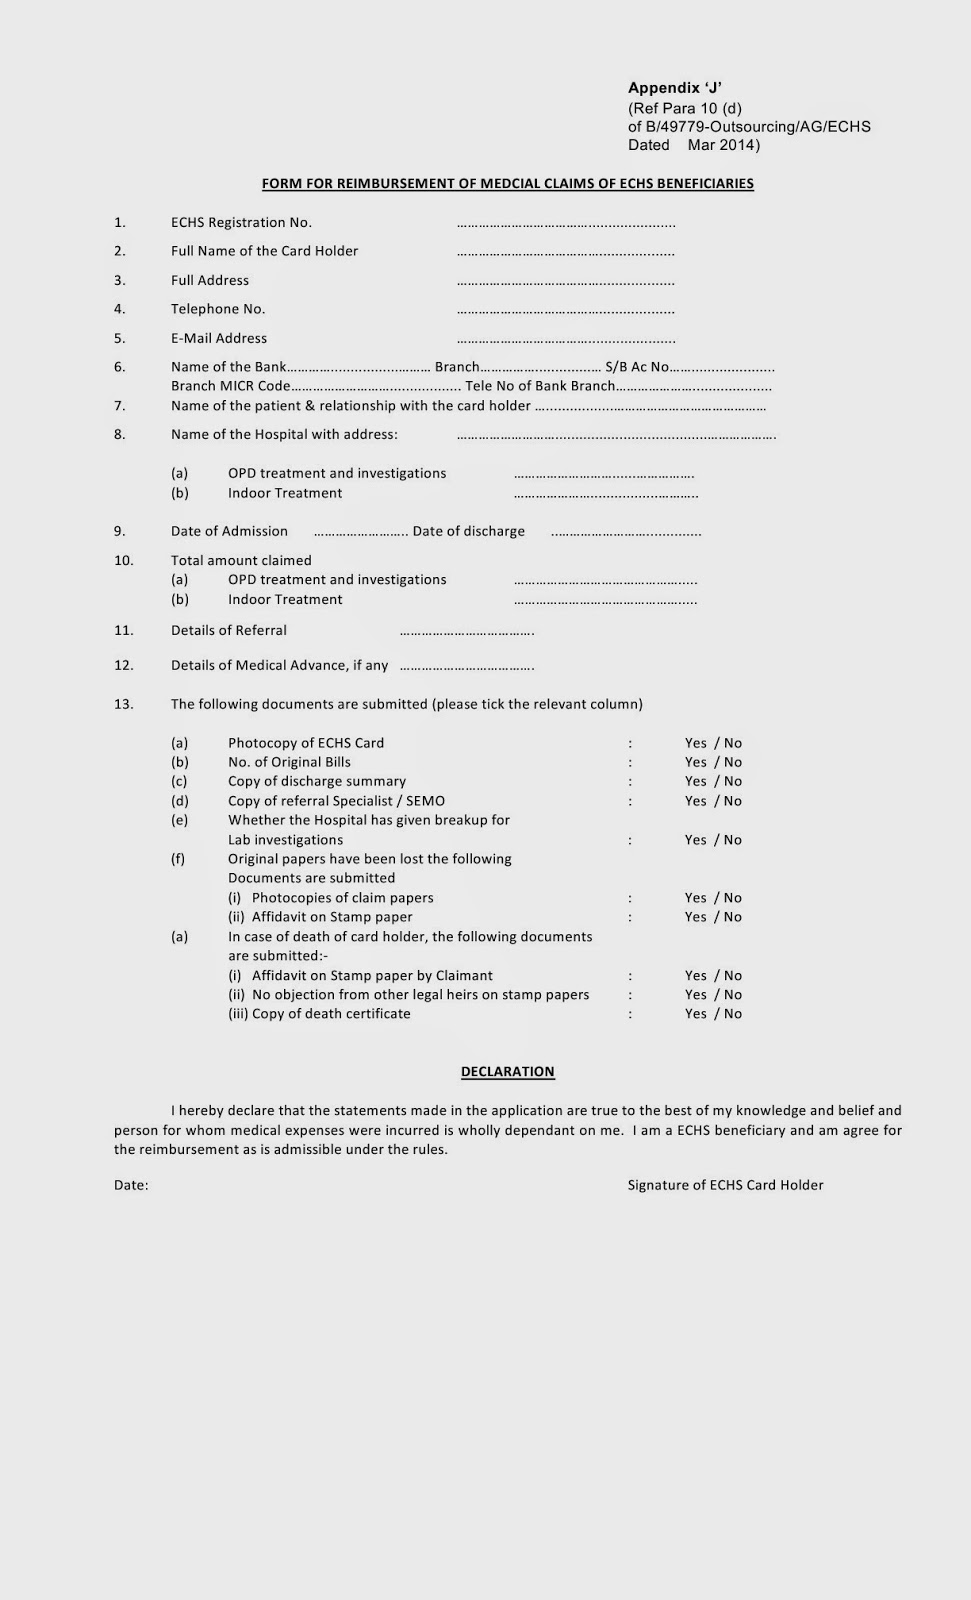 Form For Reimbursement Of Medical Claims Of Echs Beneficiaries